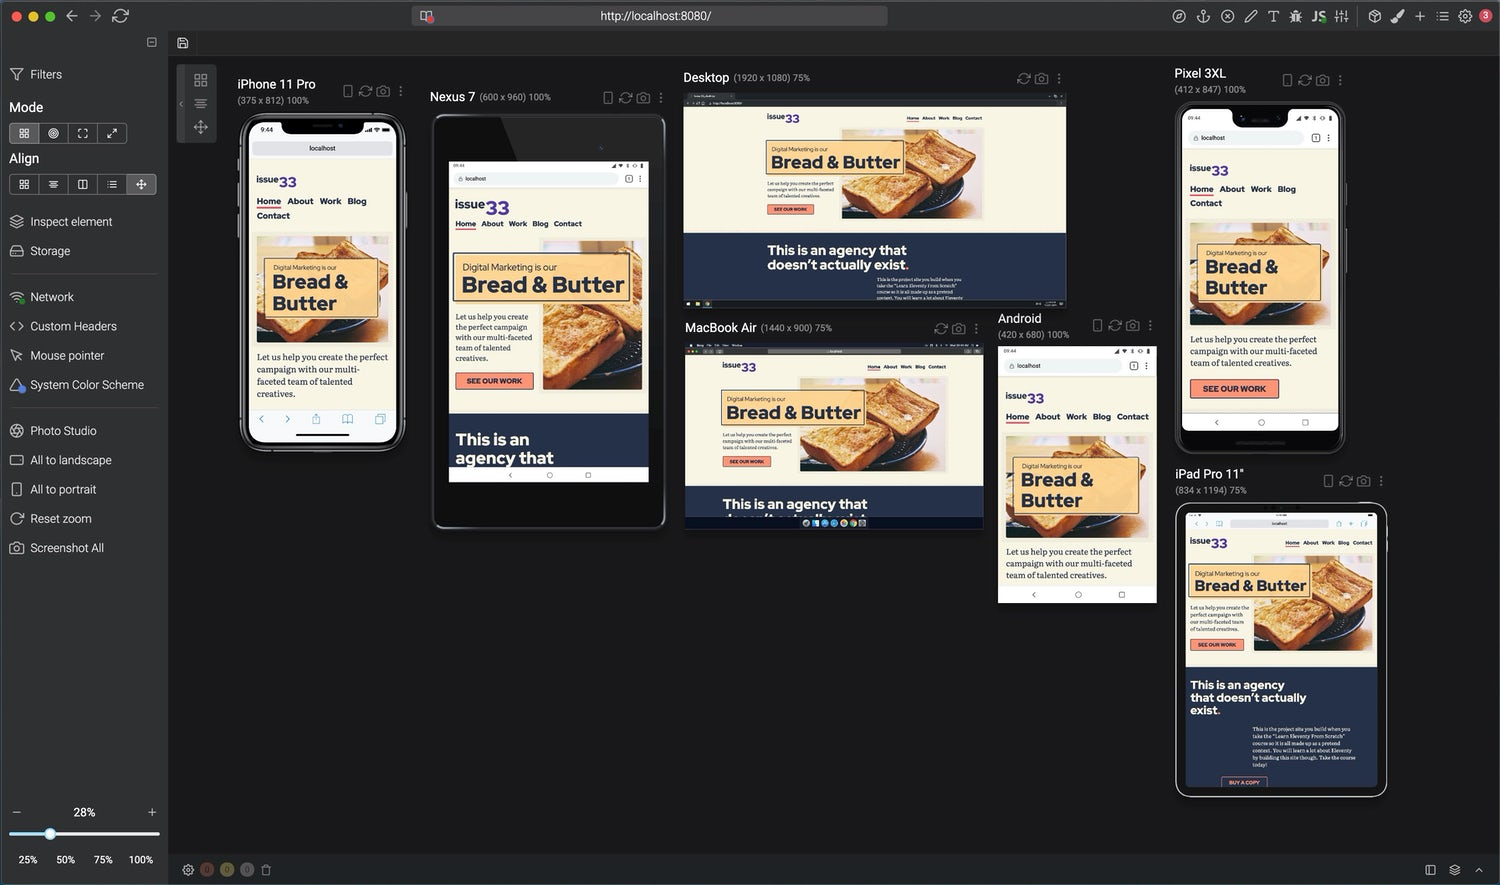 The home page intro morphs between a stacked layout and a complex grid layout based on the viewport. There are multiple devices such as iPhones, Macs and Android phones